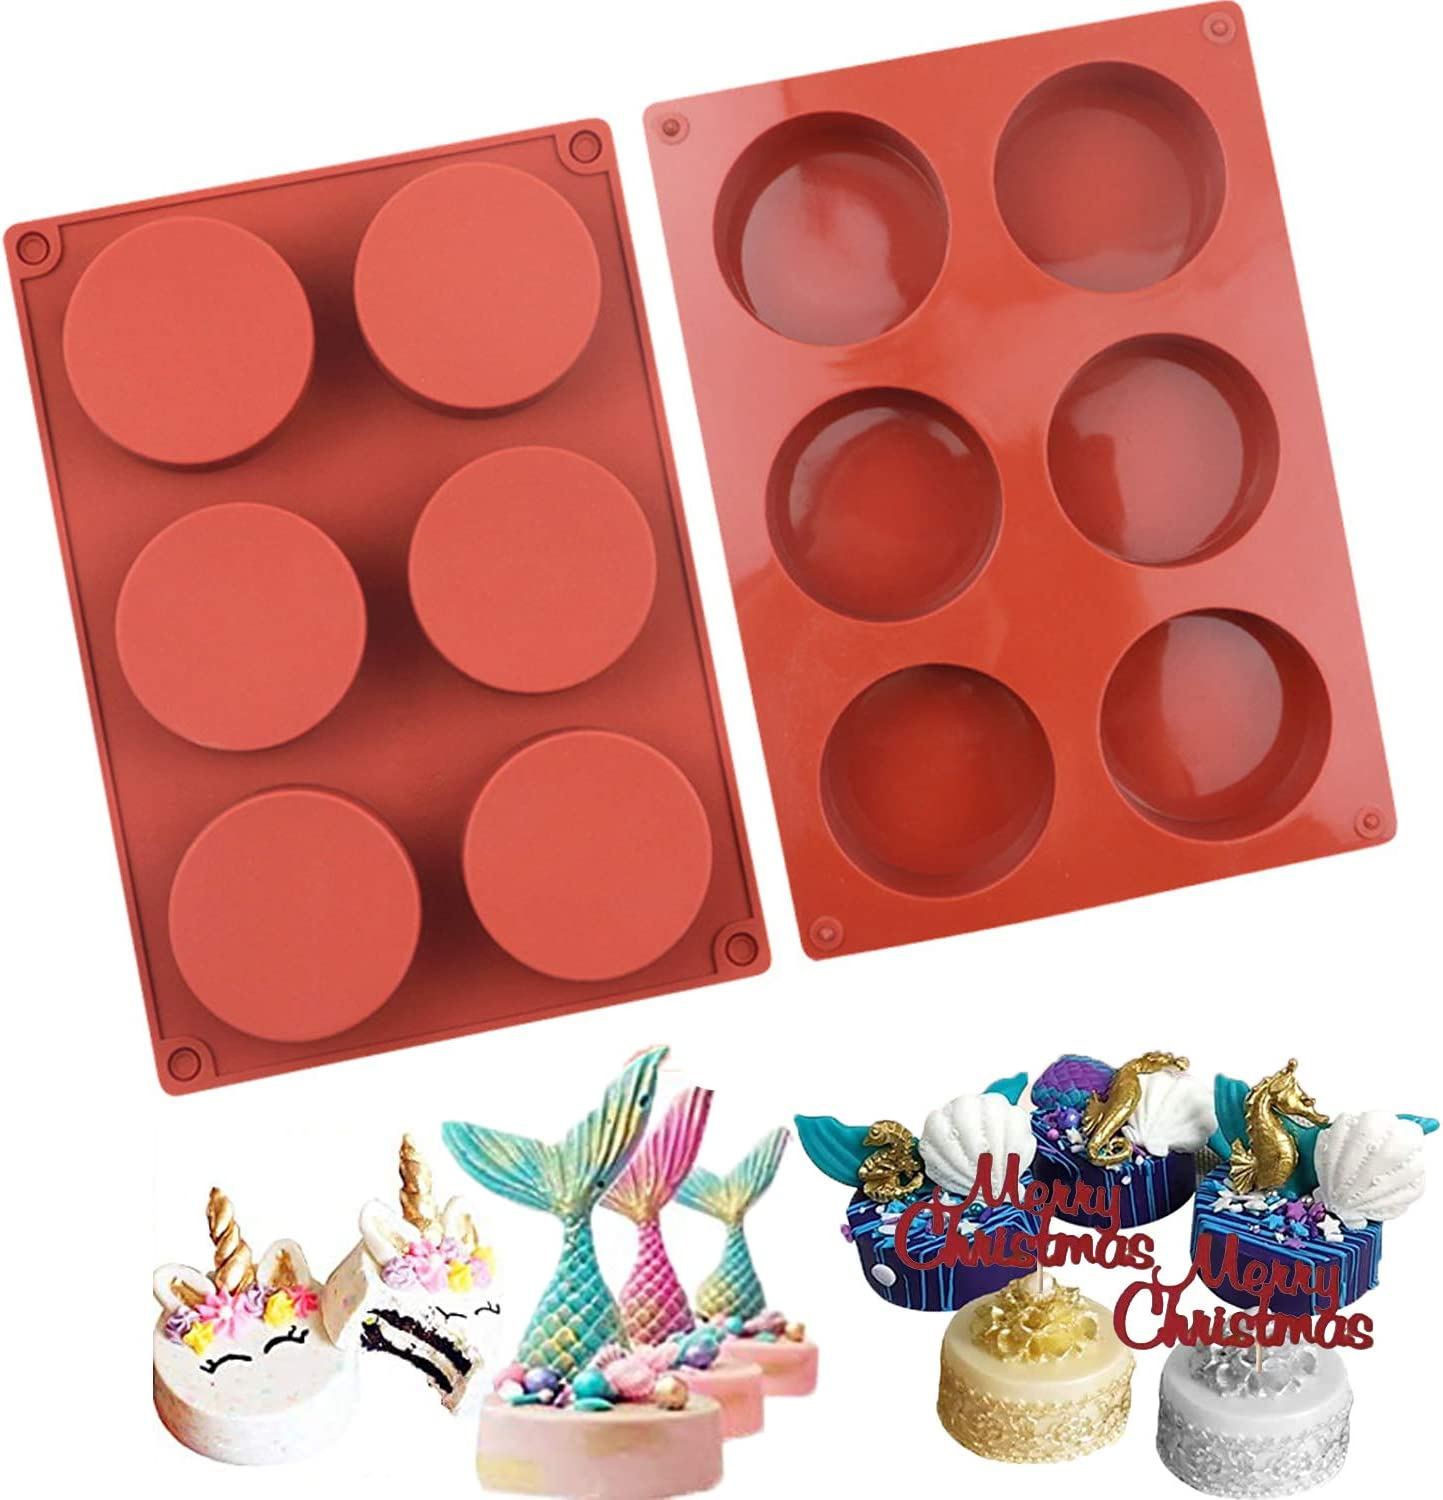 6 Holes Round Cylinder Silicone Mold for Chocolate Cookie Molds Jelly, Cake,Food Grade Silicone,Non-stick, Xmas Family DIY Time,Dia 2.24